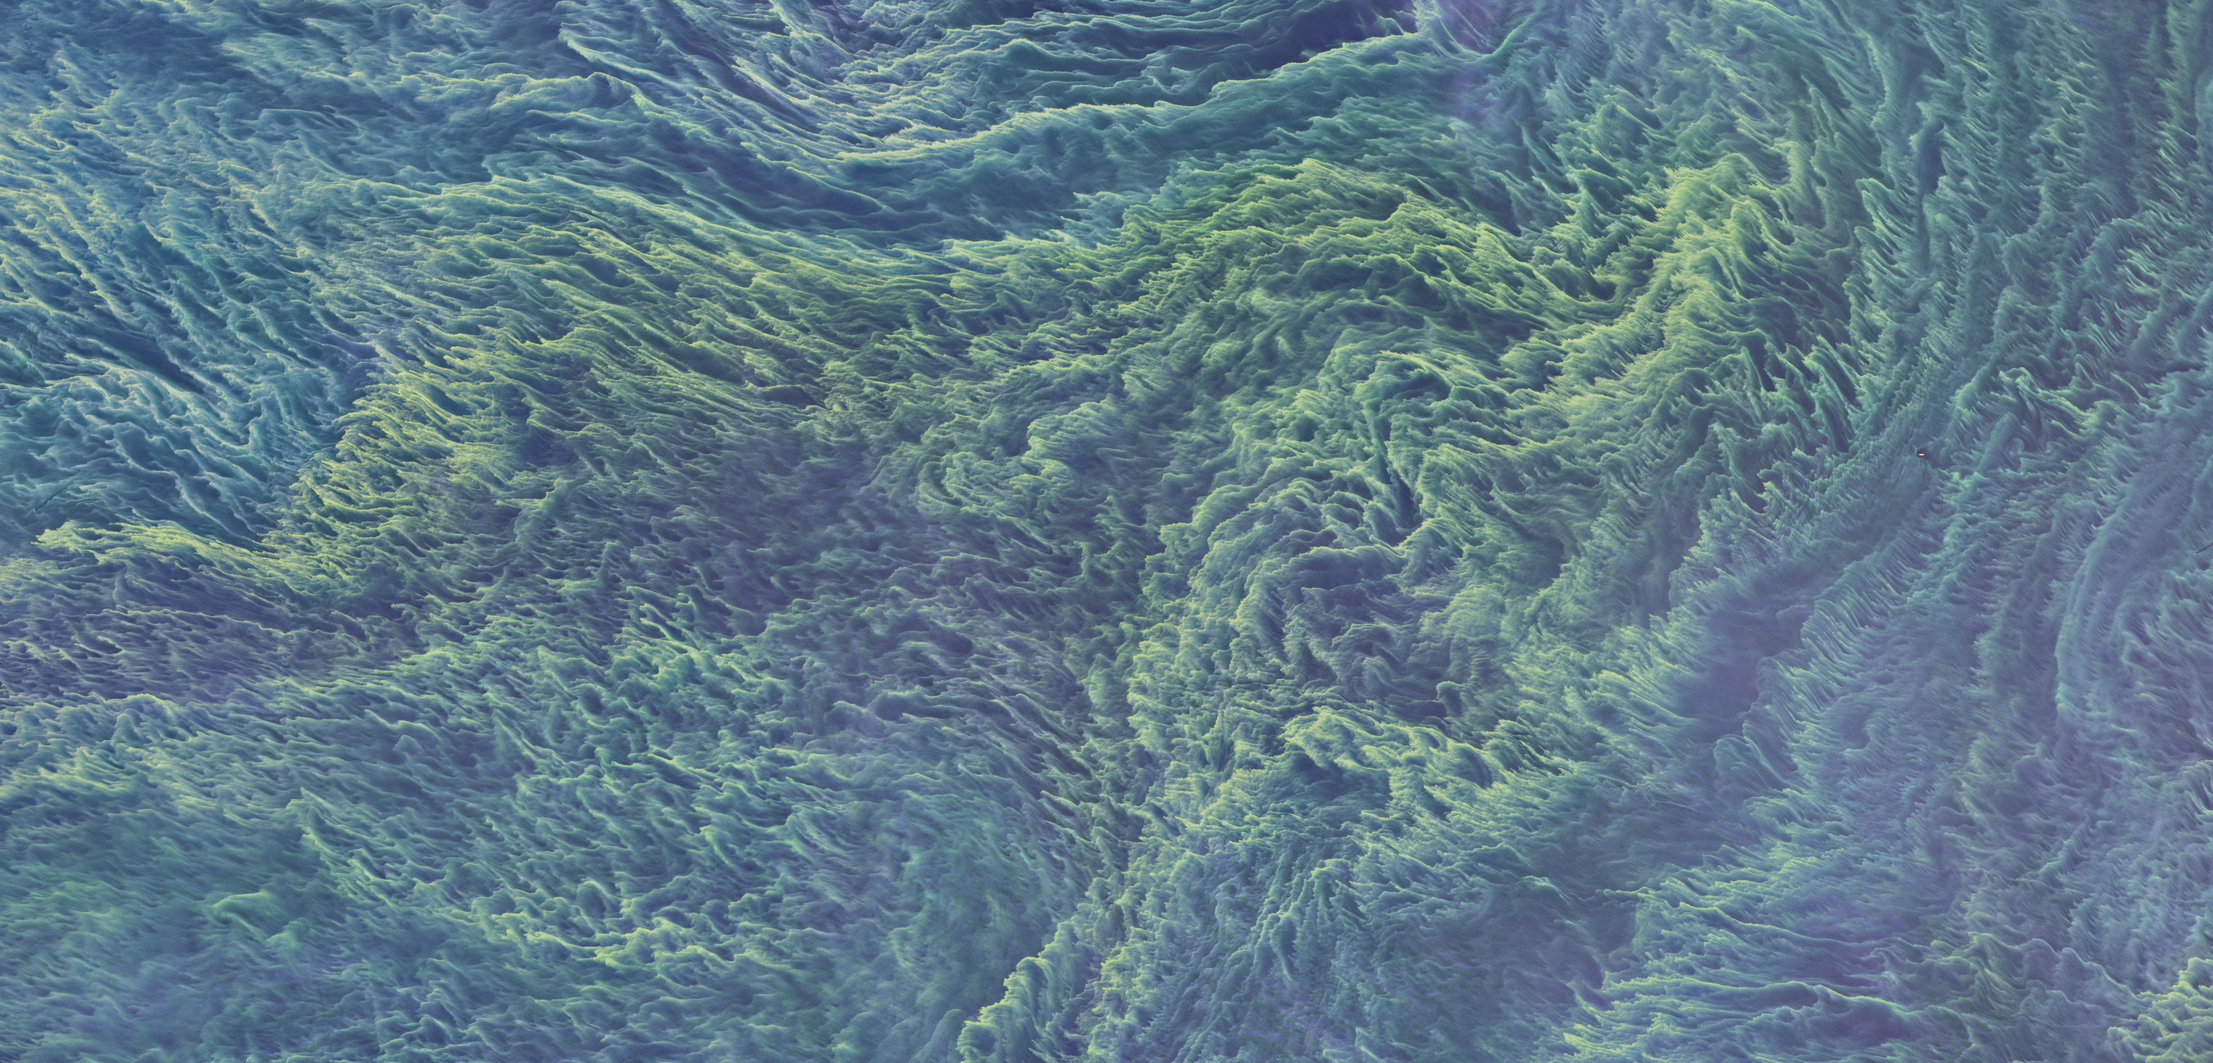 A false-color satellite image of a massive cyanobacteria bloom in the Baltic Sea, as seen by NASA's Landsat 8. Photo by NASA/Earth Observatory